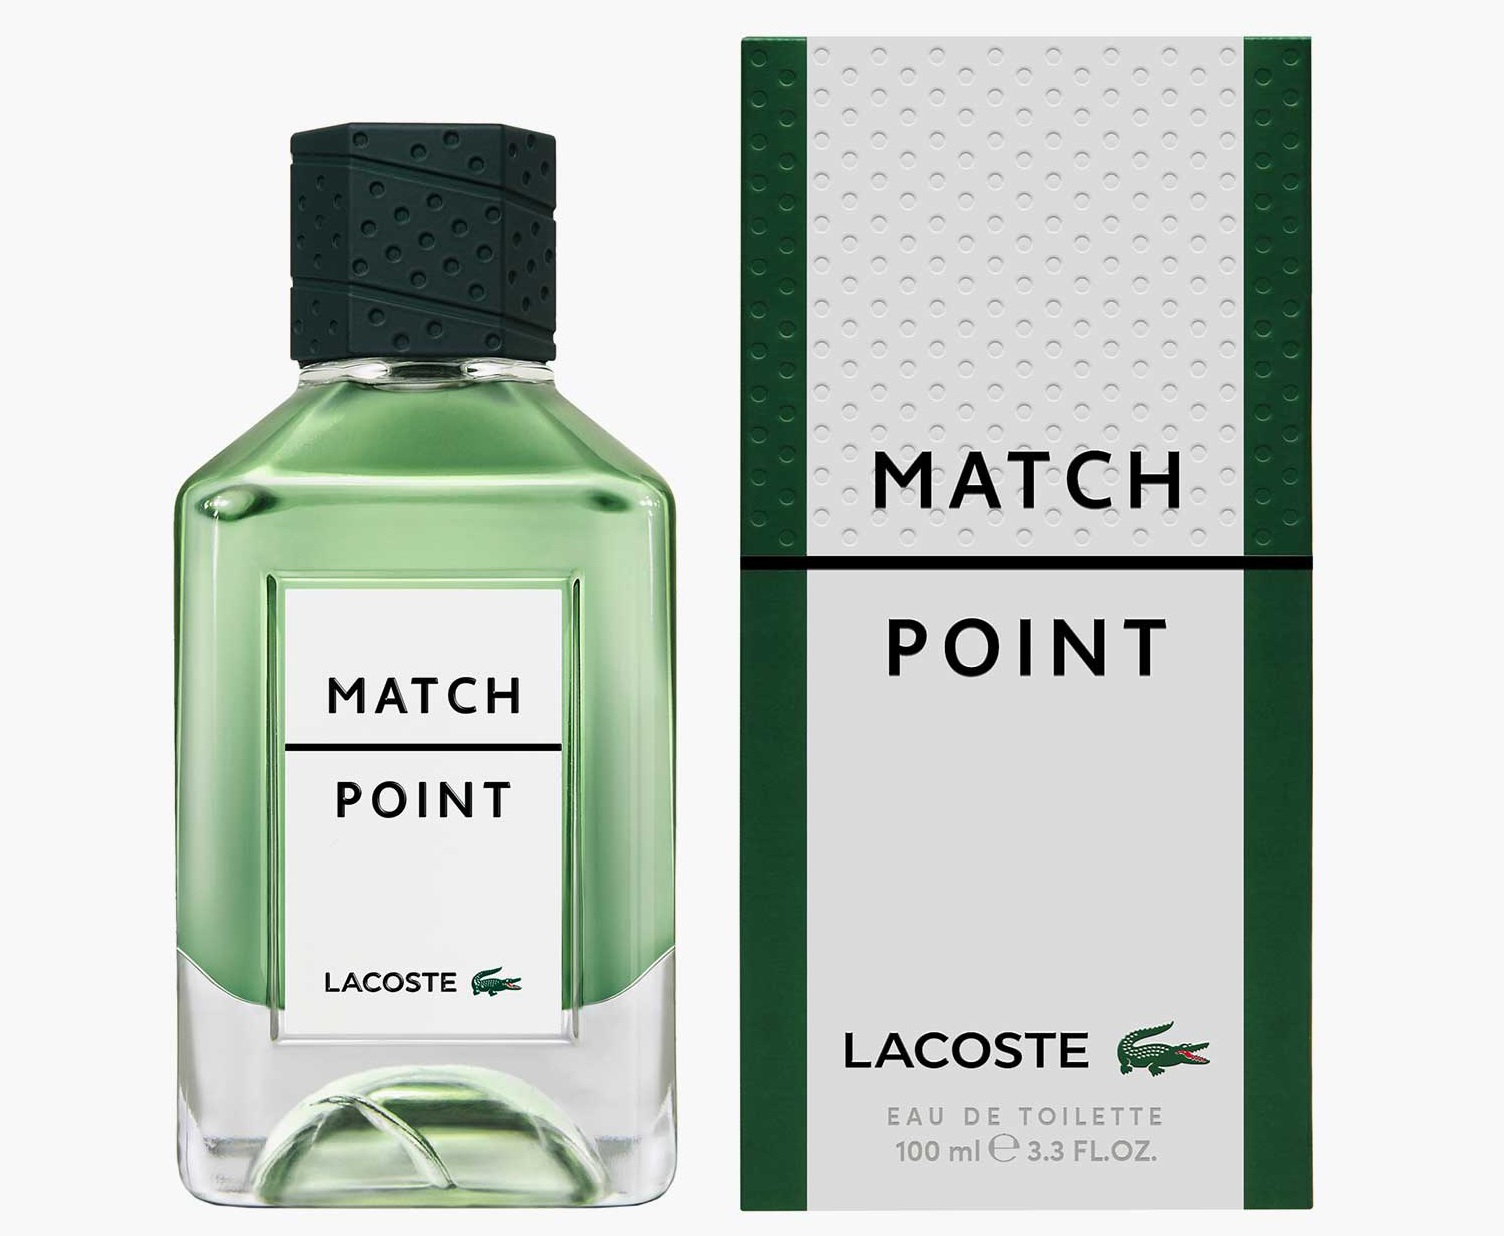 Lacoste Match Point 100 mL